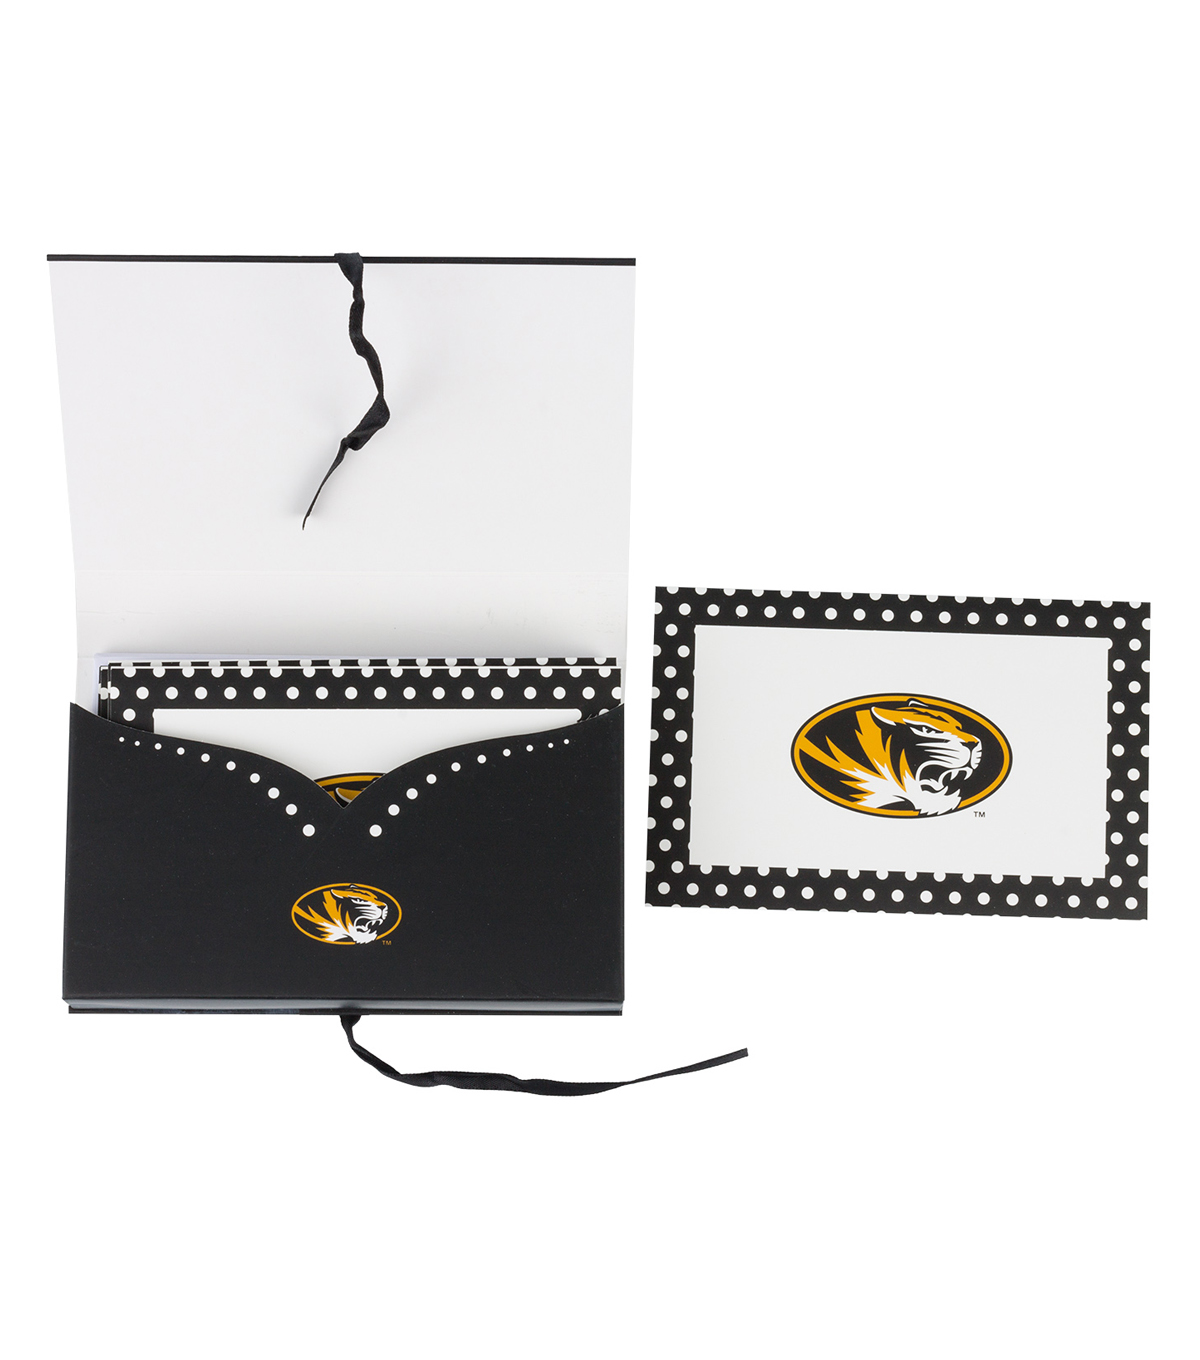 University of Missouri Tigers Note Card Set